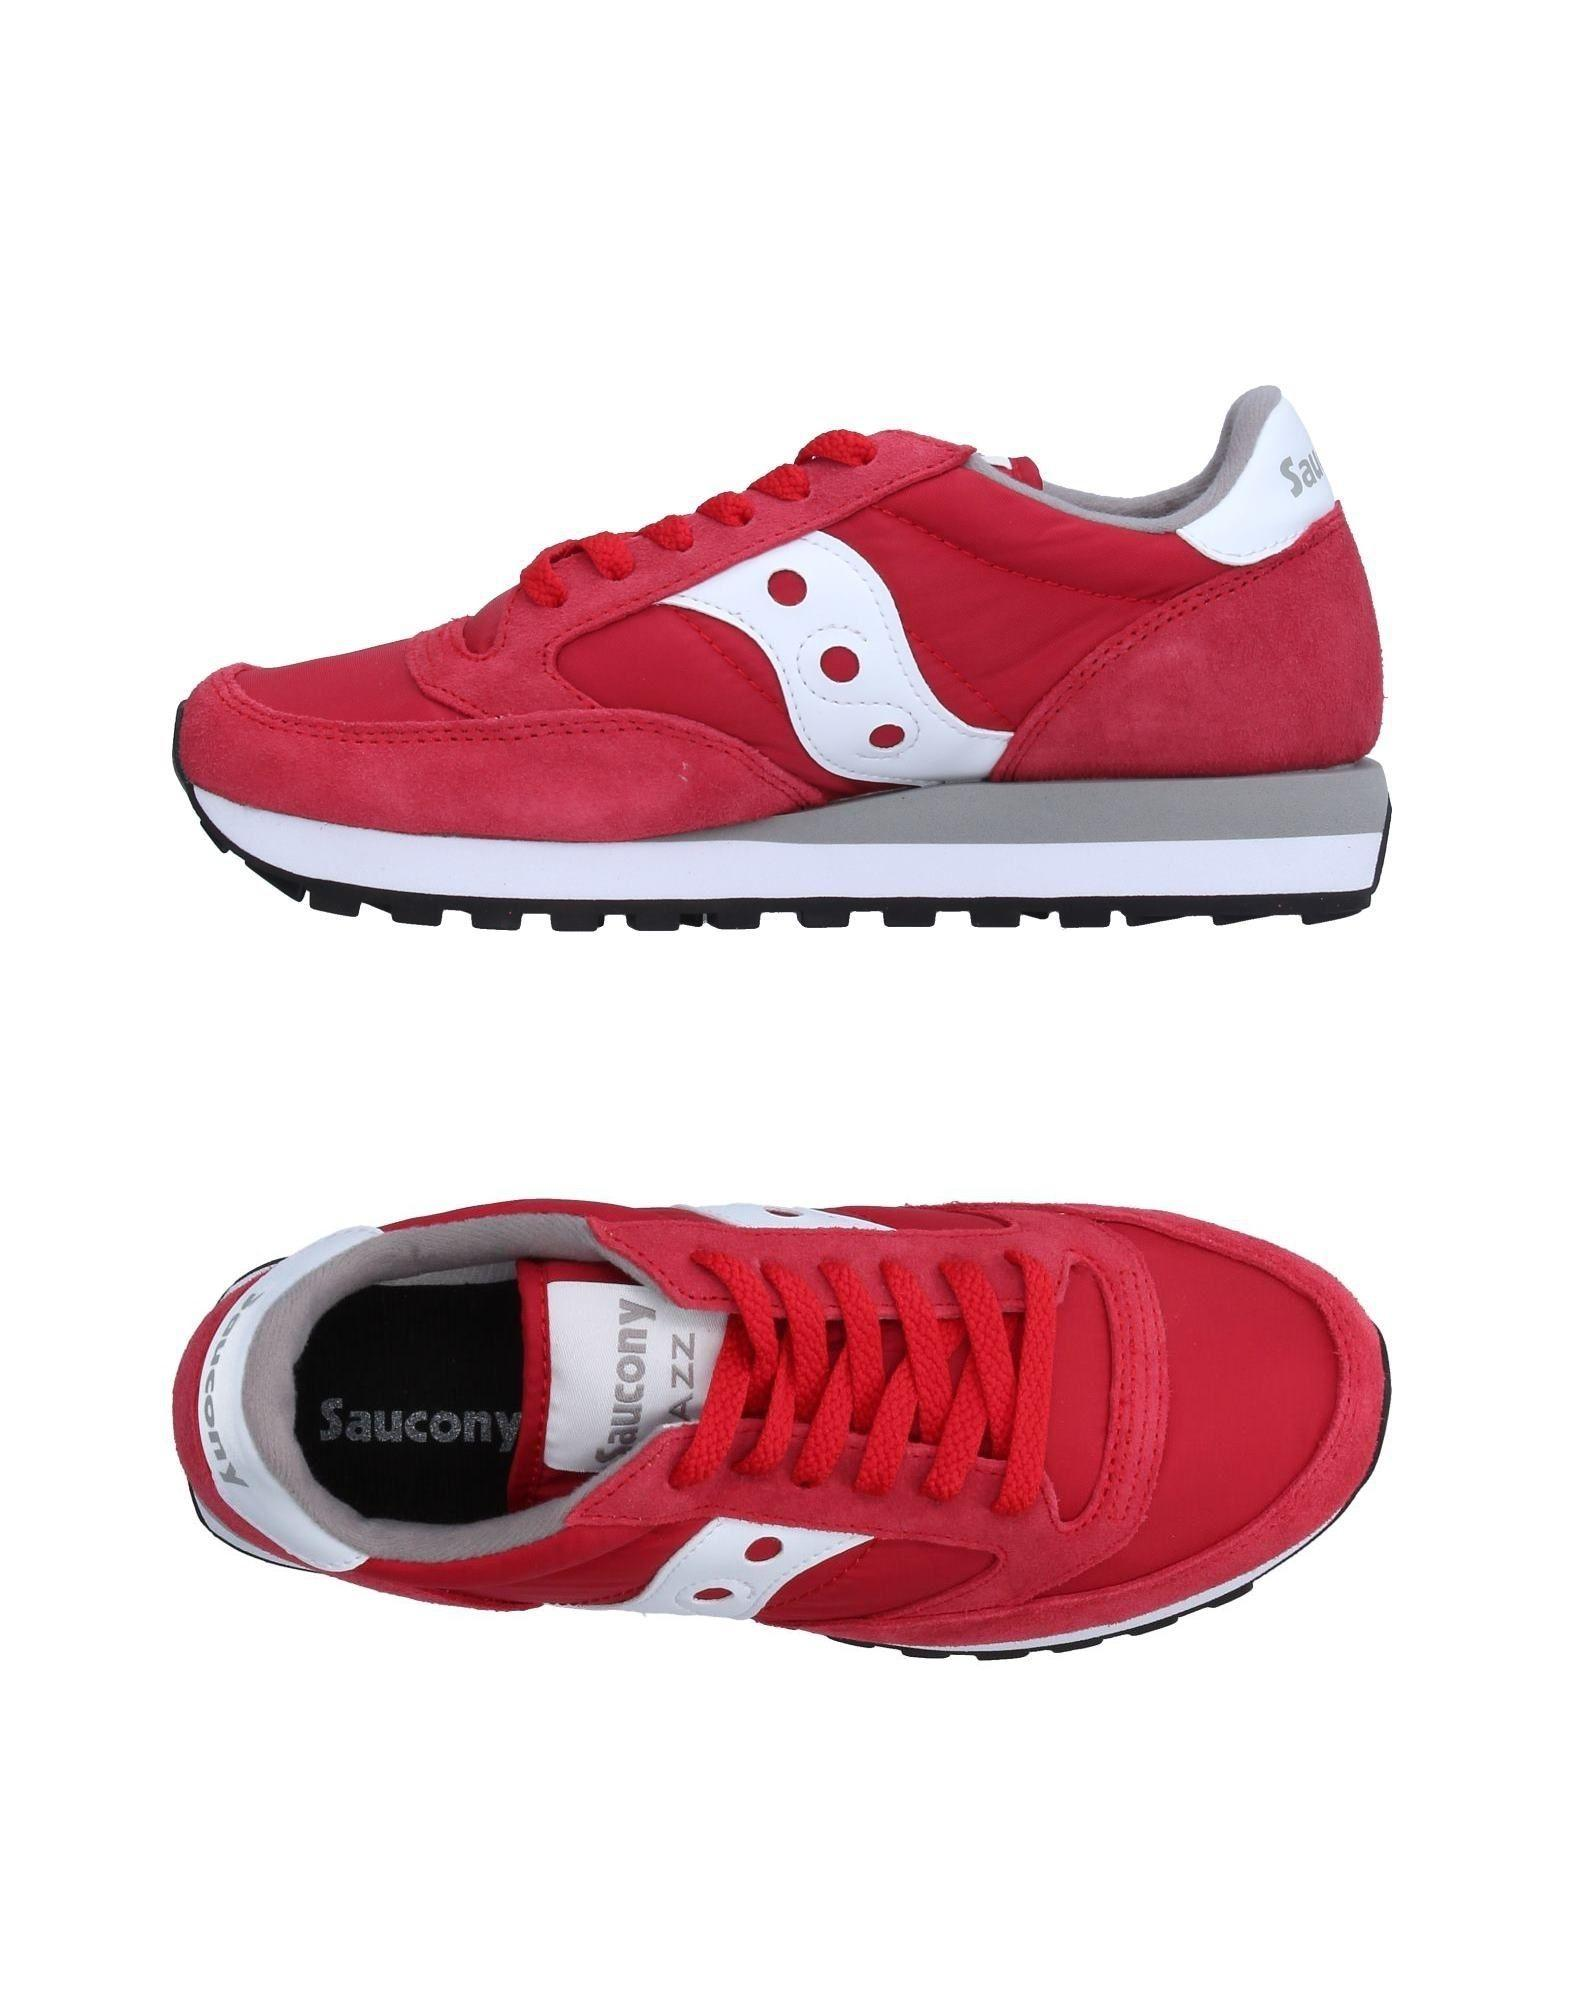 66e251257e9b Lyst - Saucony SAUCONY Sneaker jazz rossa in Red for Men - Save 54%